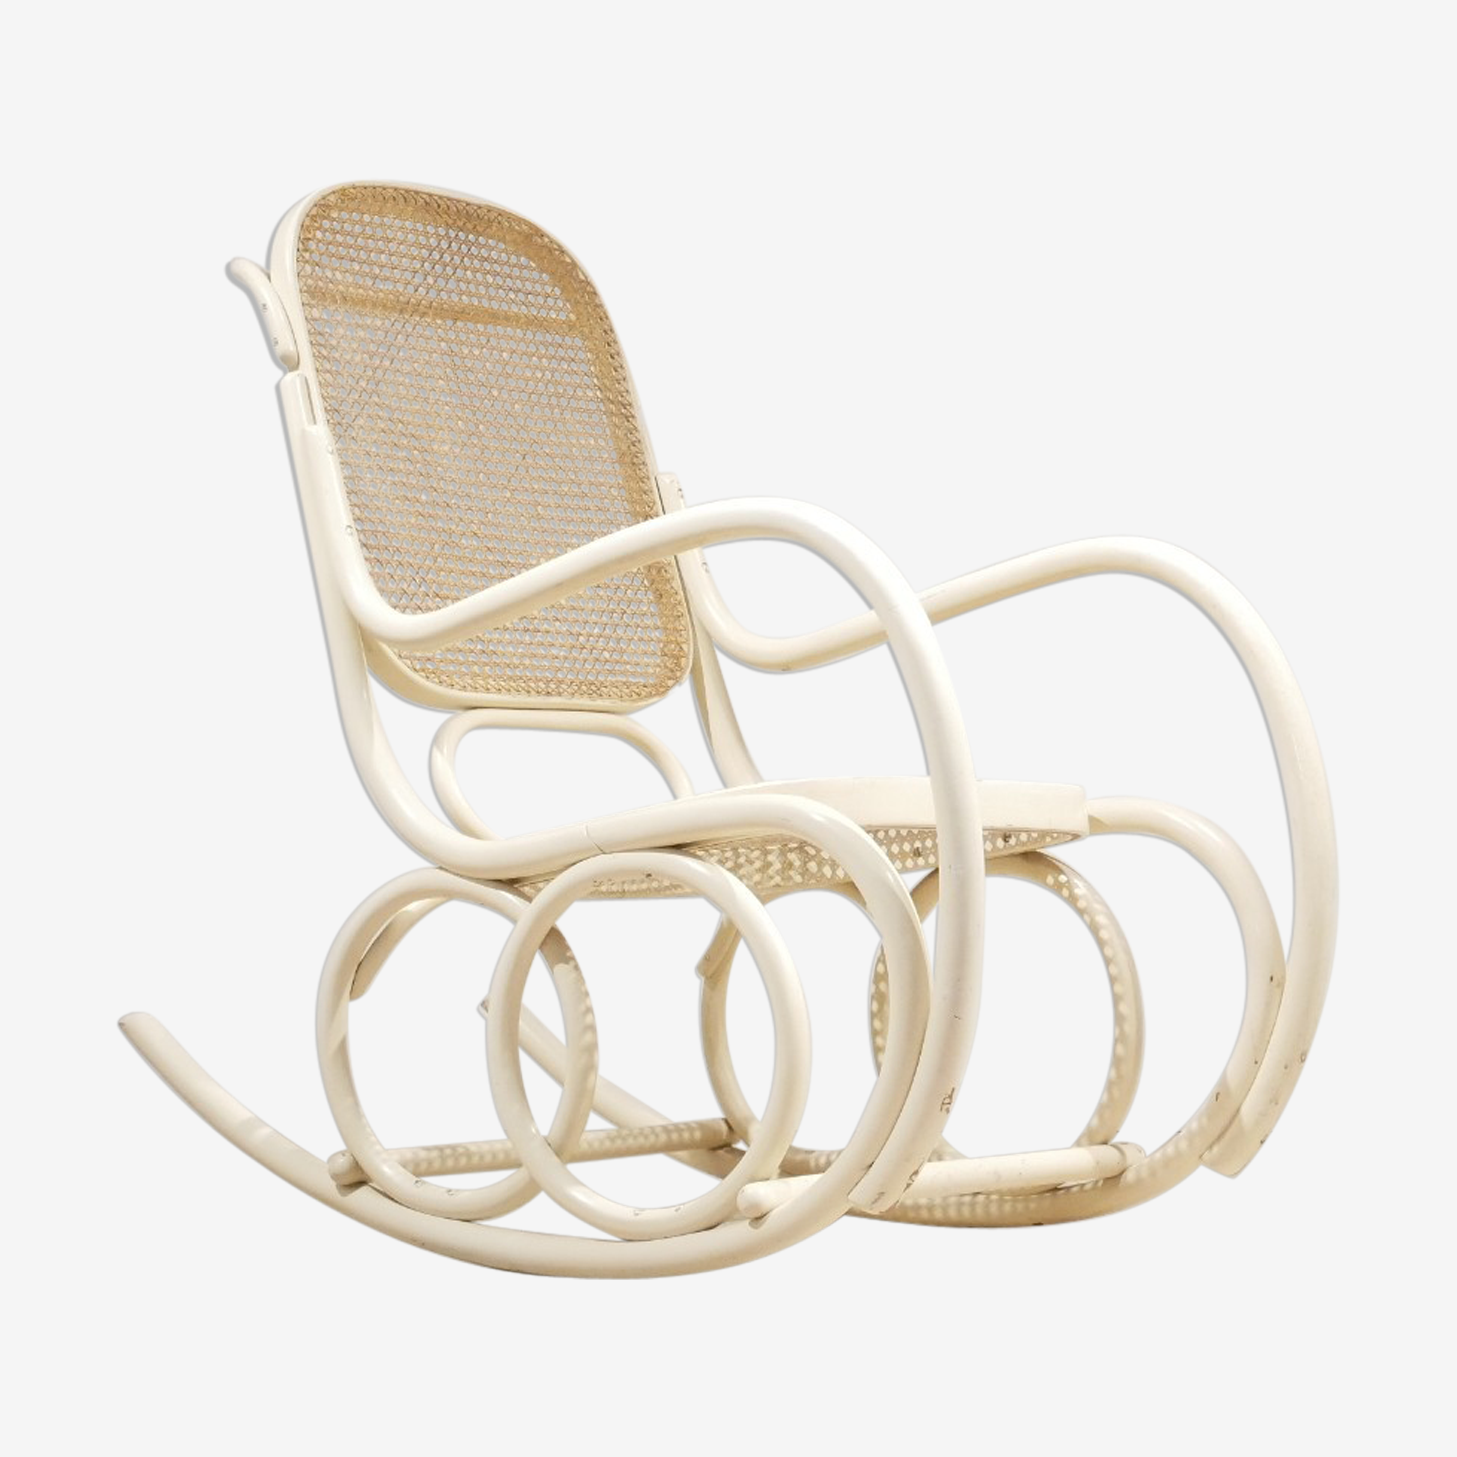 Old rocking chair wooden curved white